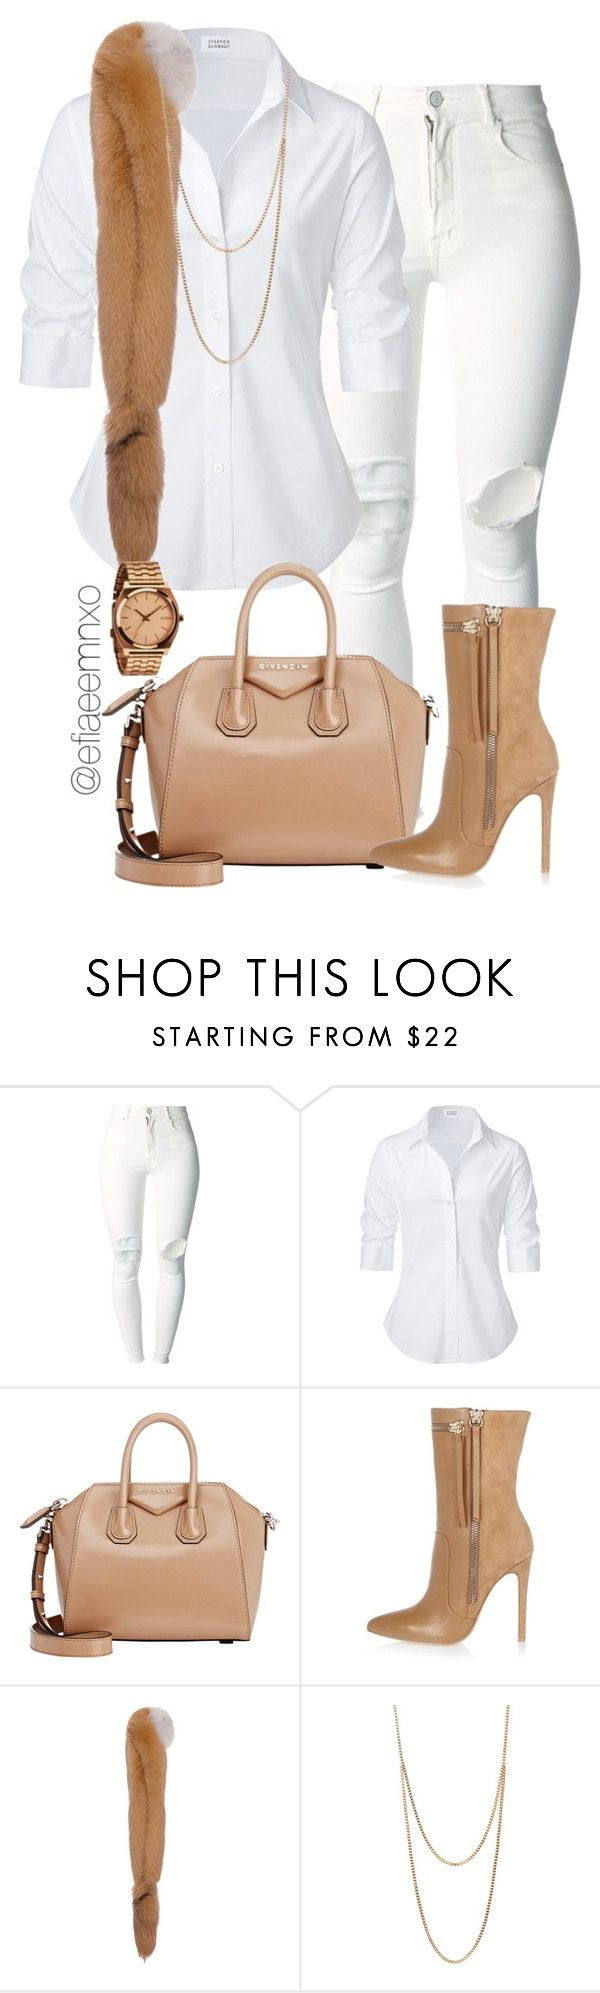 """Untitled #1083"" by efiaeemnxo ❤ liked on Polyvore featuring mode, (+) PEOPLE, Steffen Schraut, Givenchy, River Island, Marni, Club Manhattan, Nixon, women's clothing et women"